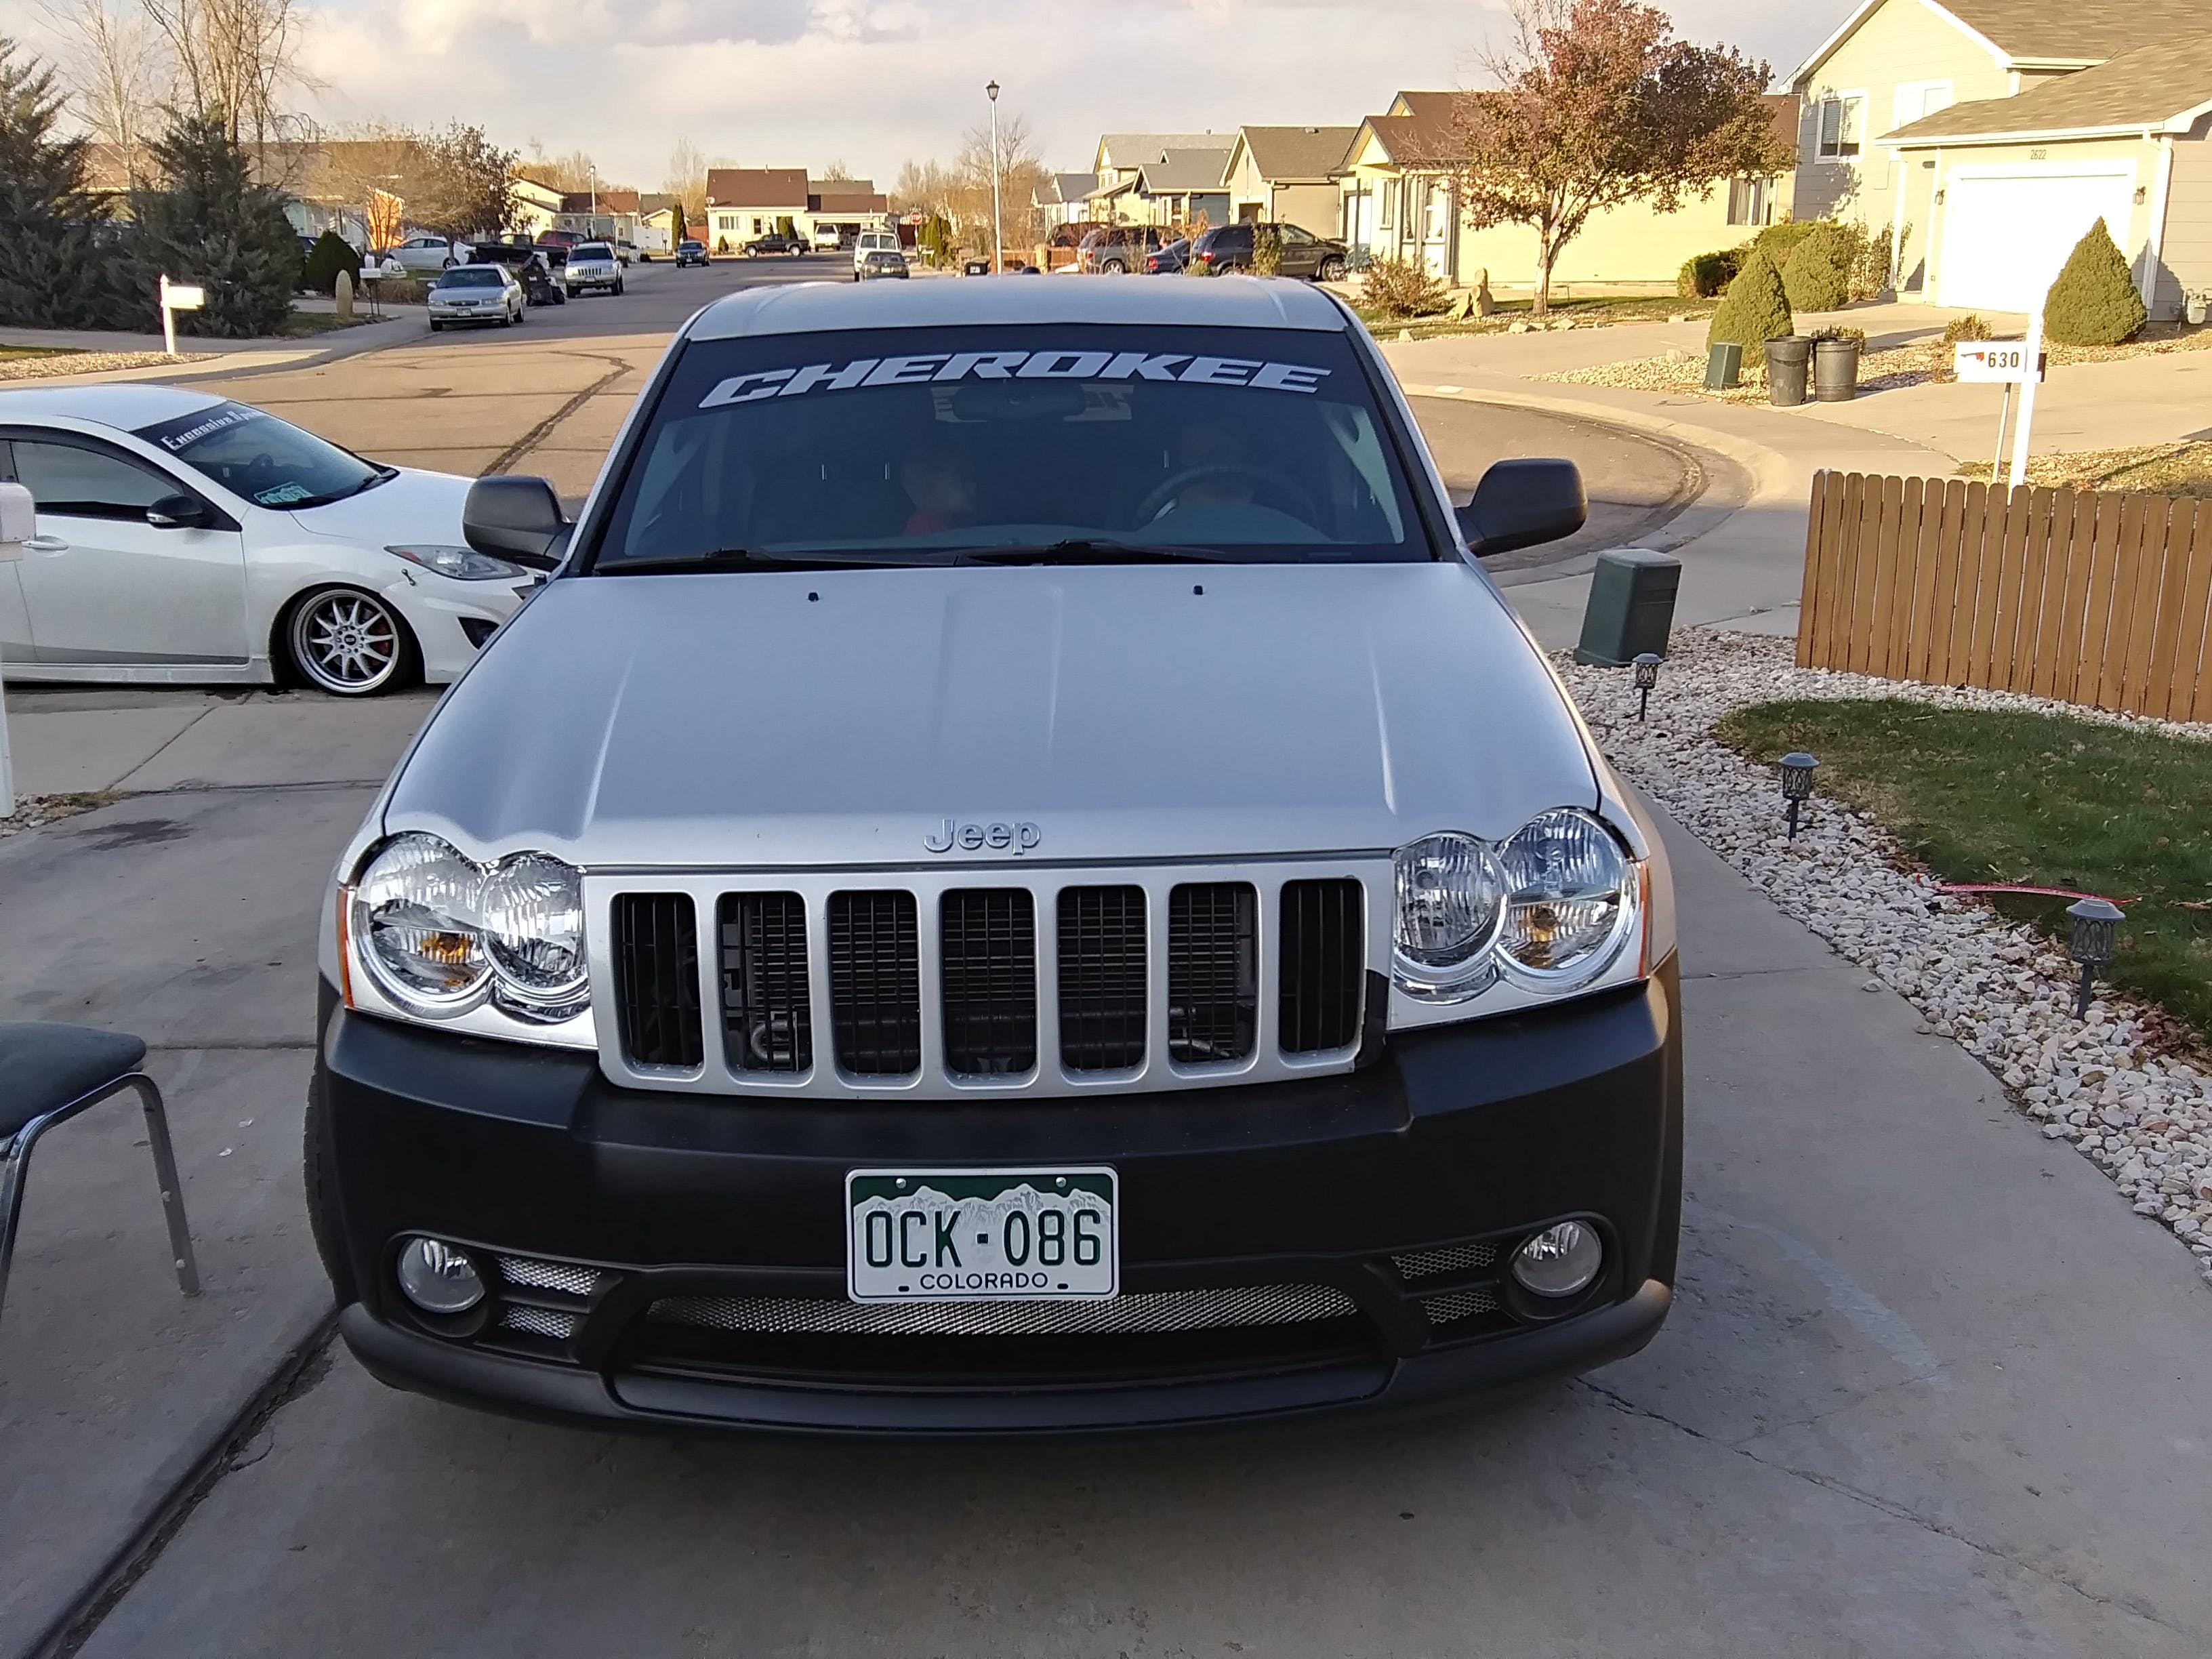 Jeep Cherokee Windshield Banner Decal Sticker A2